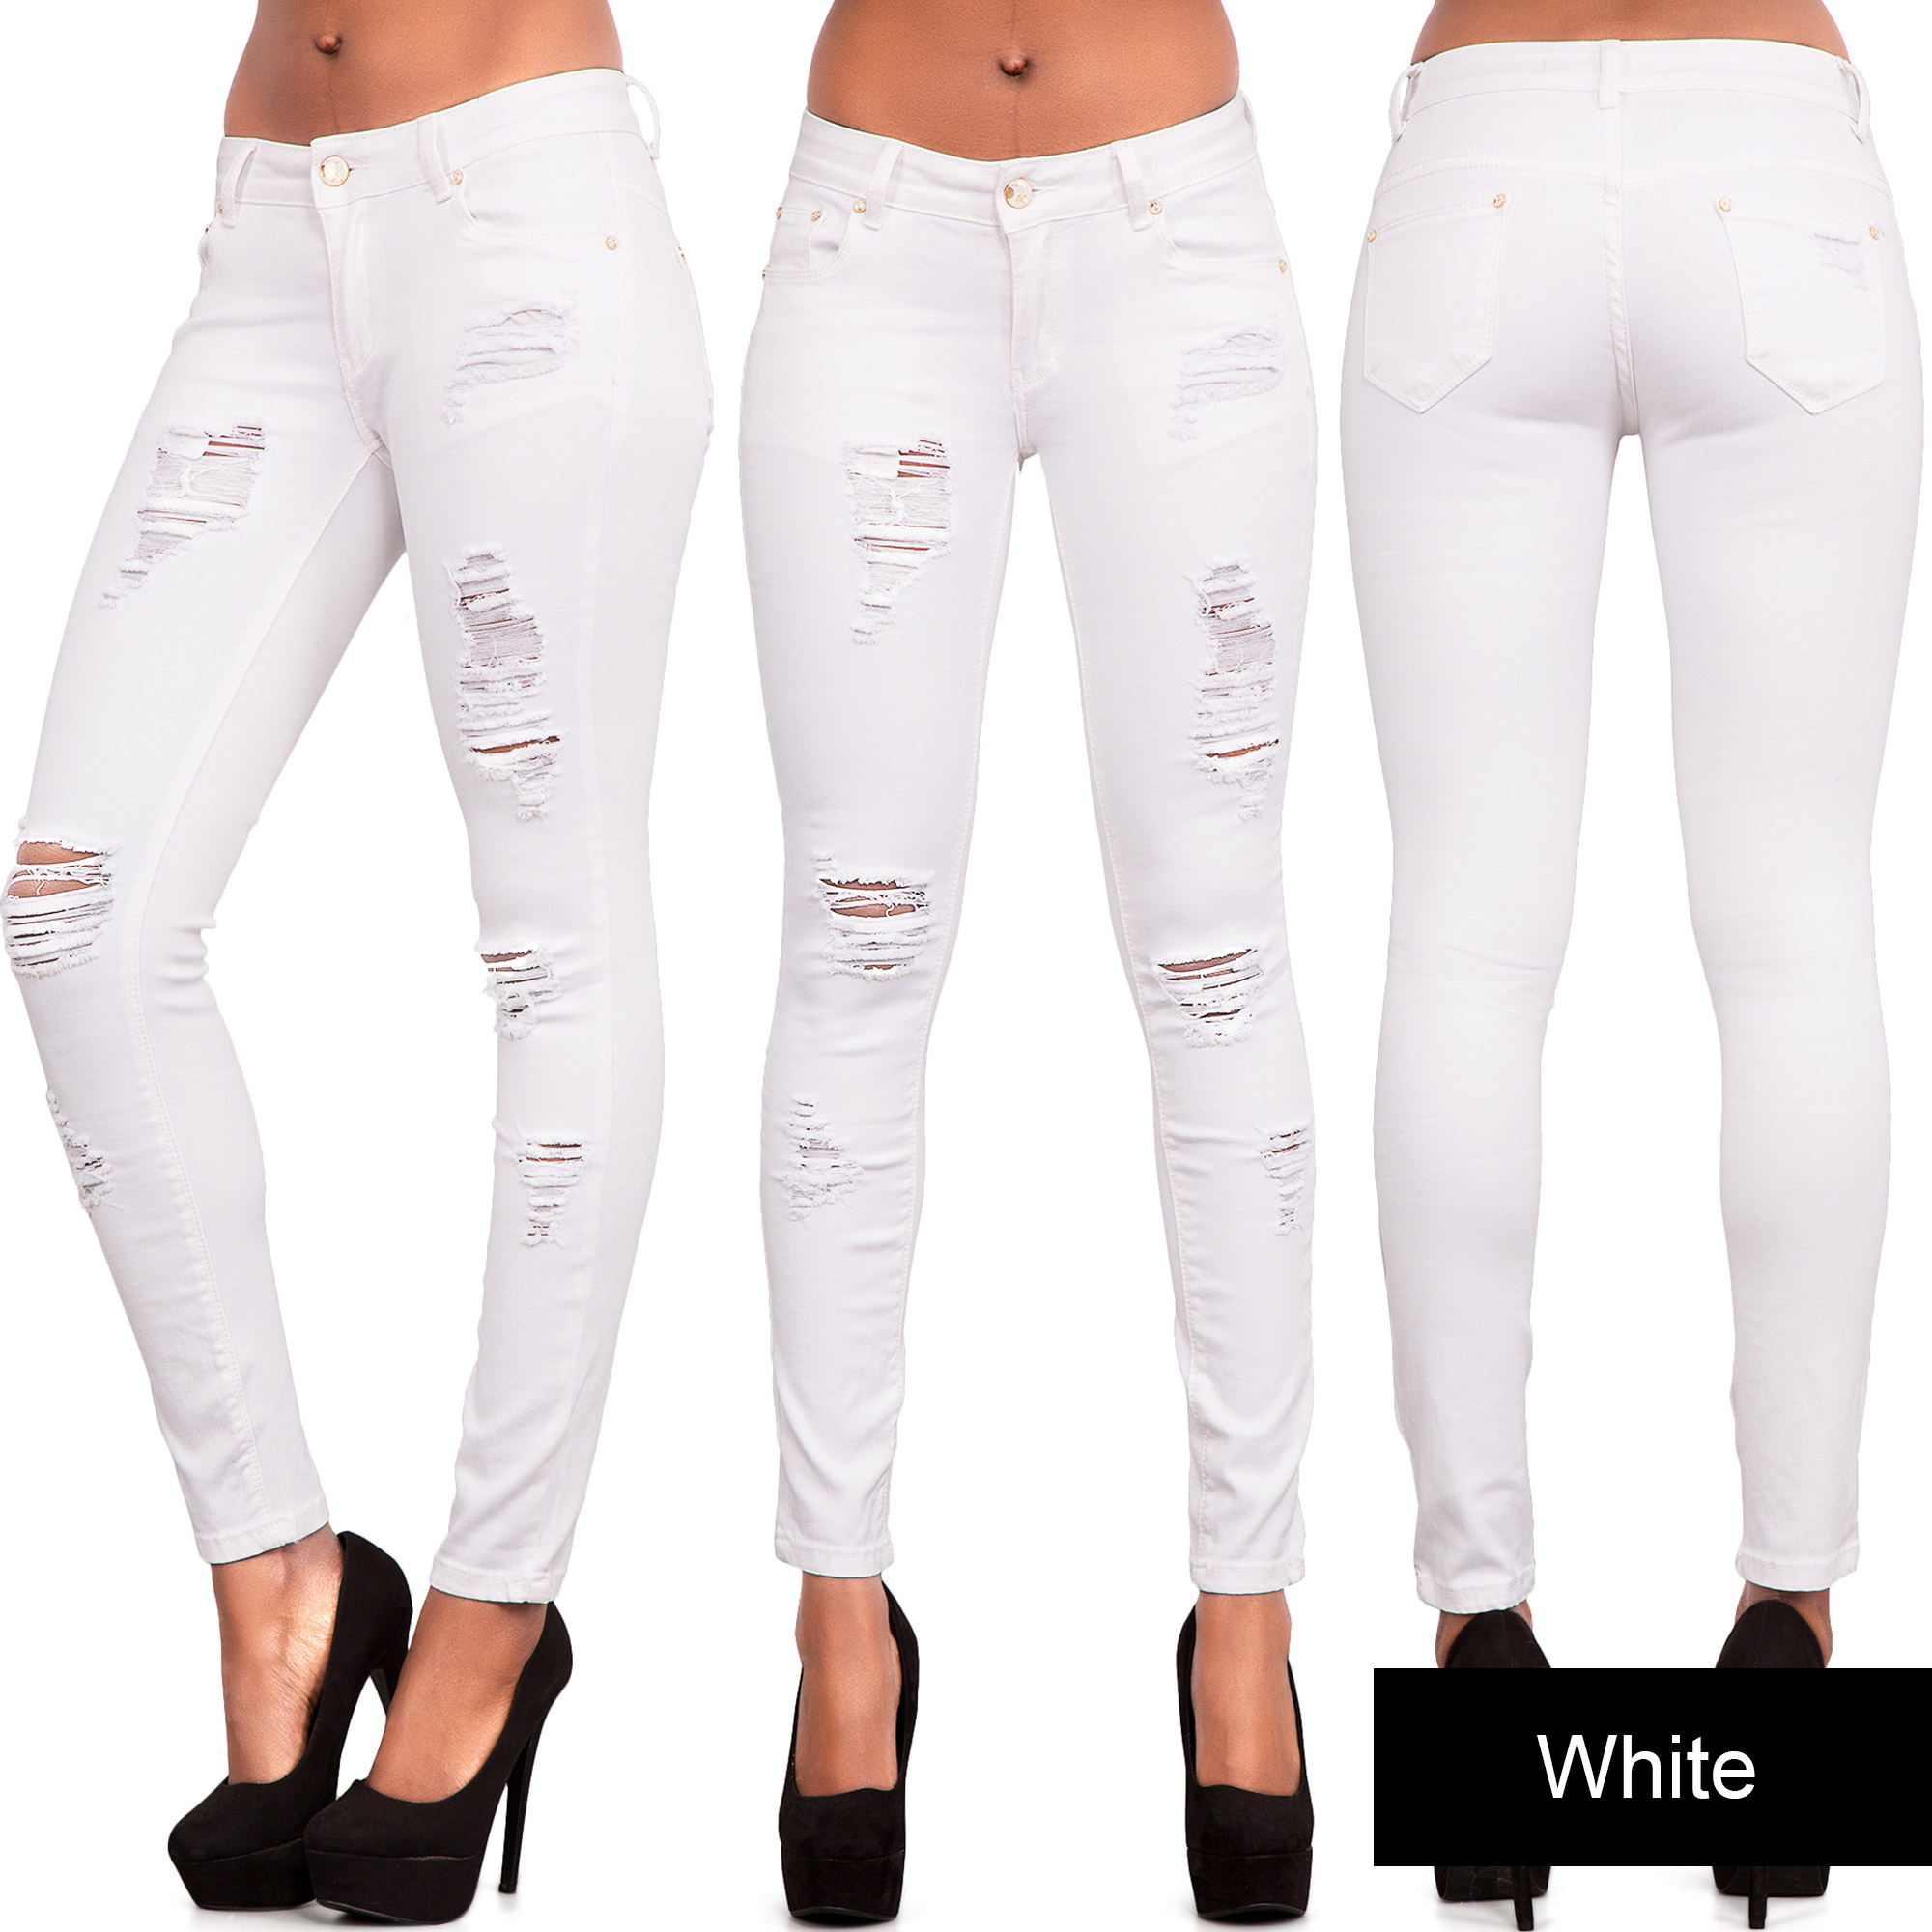 Your little cowgirl will look so darling in western jeans just like mommy's.